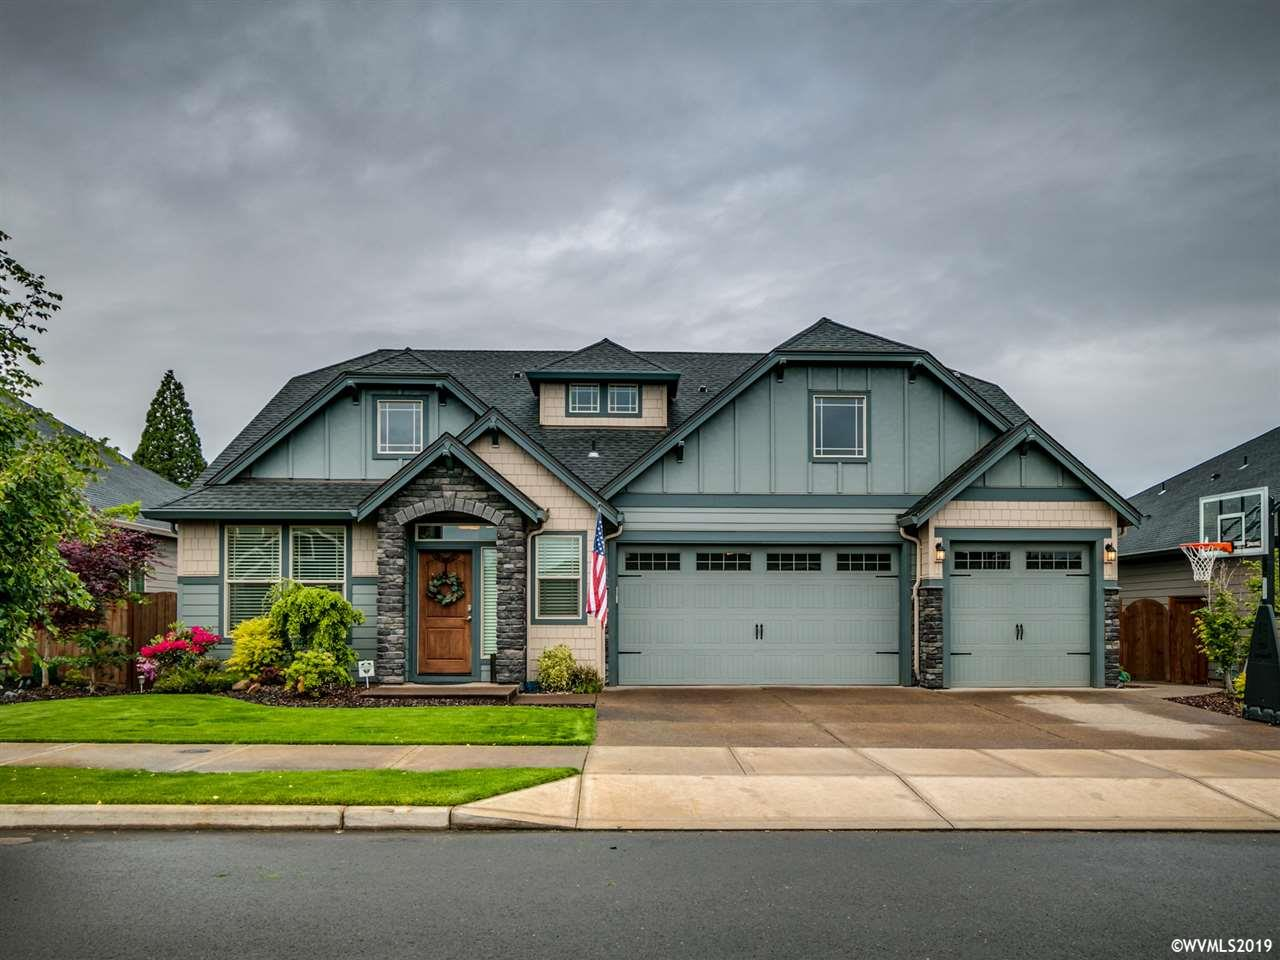 1375 S Larch St, Canby, Oregon